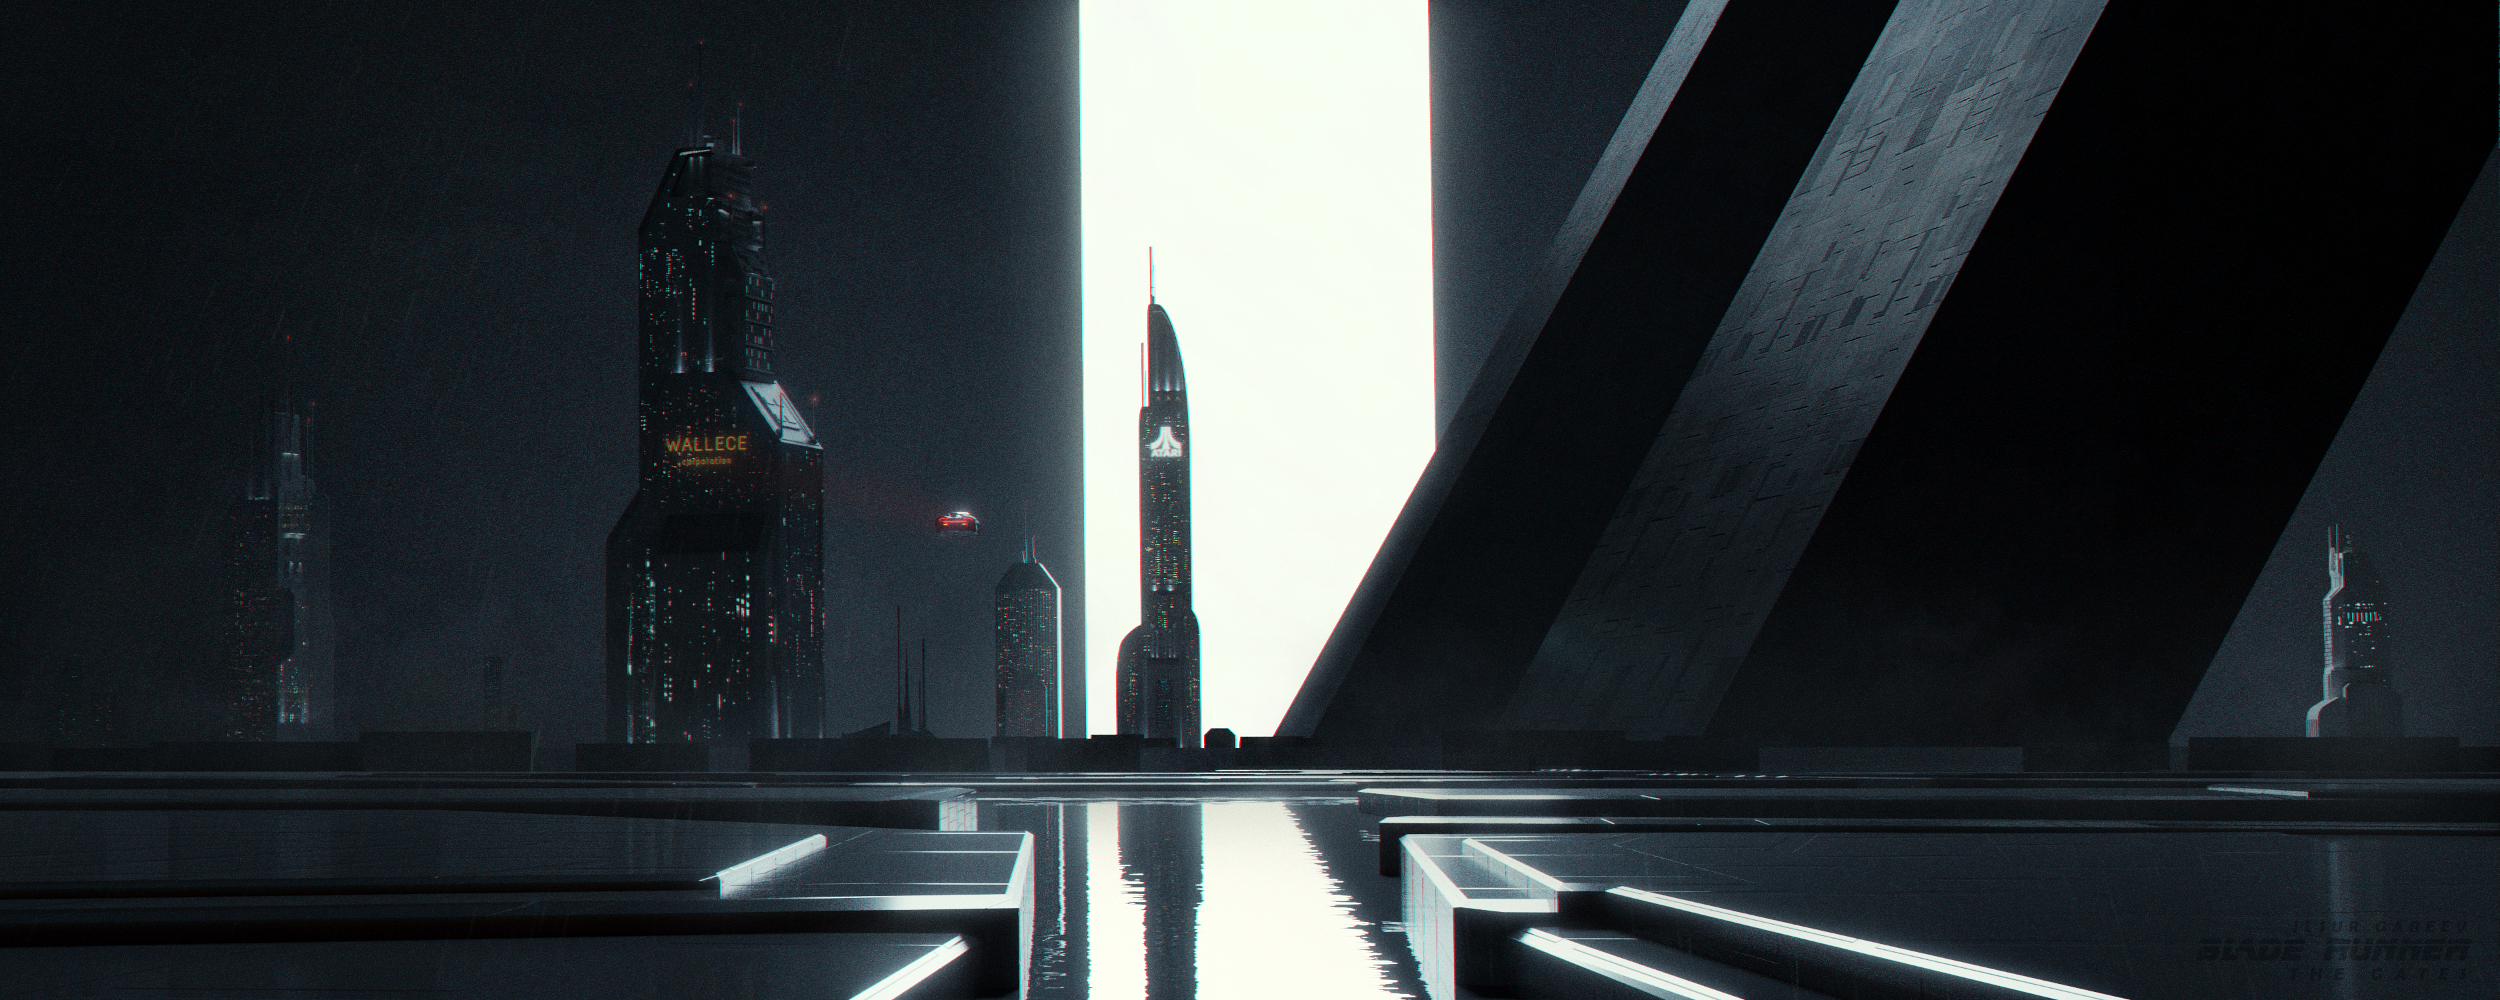 Blade Runner: The Gates